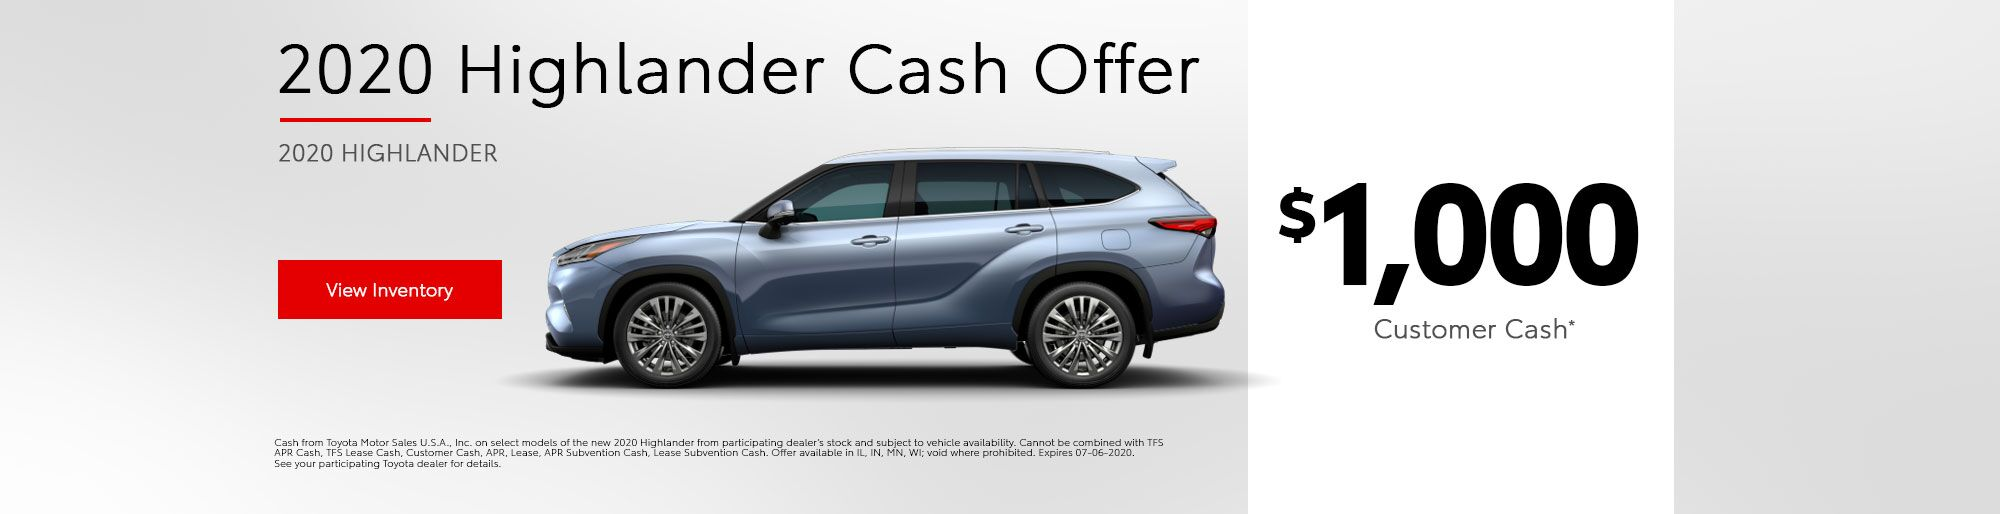 2020 Highlander Customer Cash